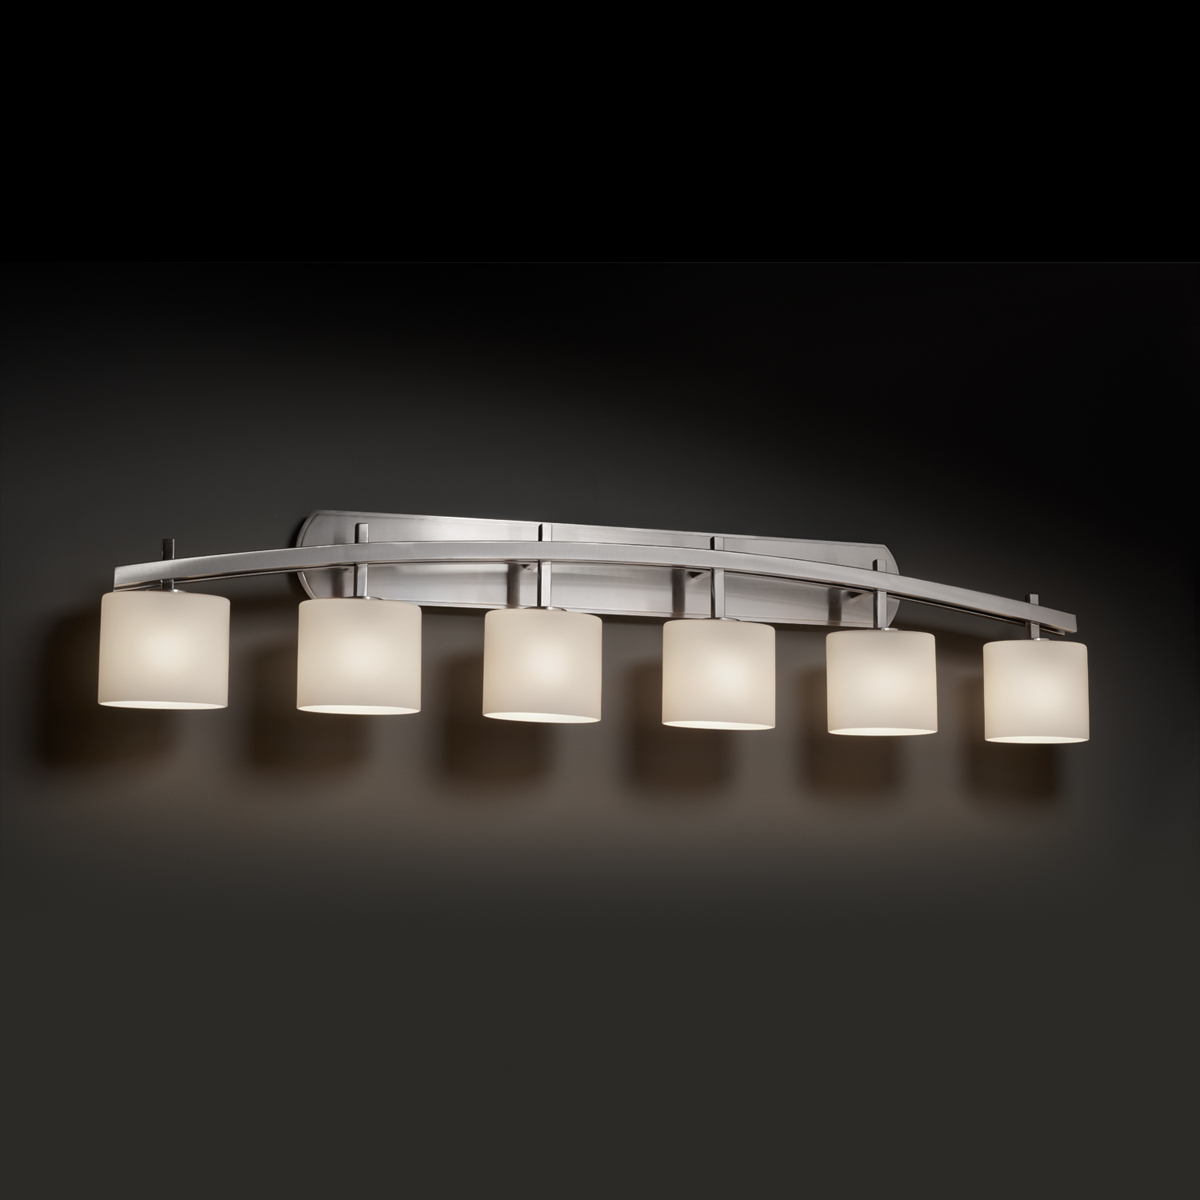 Justice Design Fsn 8596 Archway 6 Light Bath Bar From The Fusion Collection